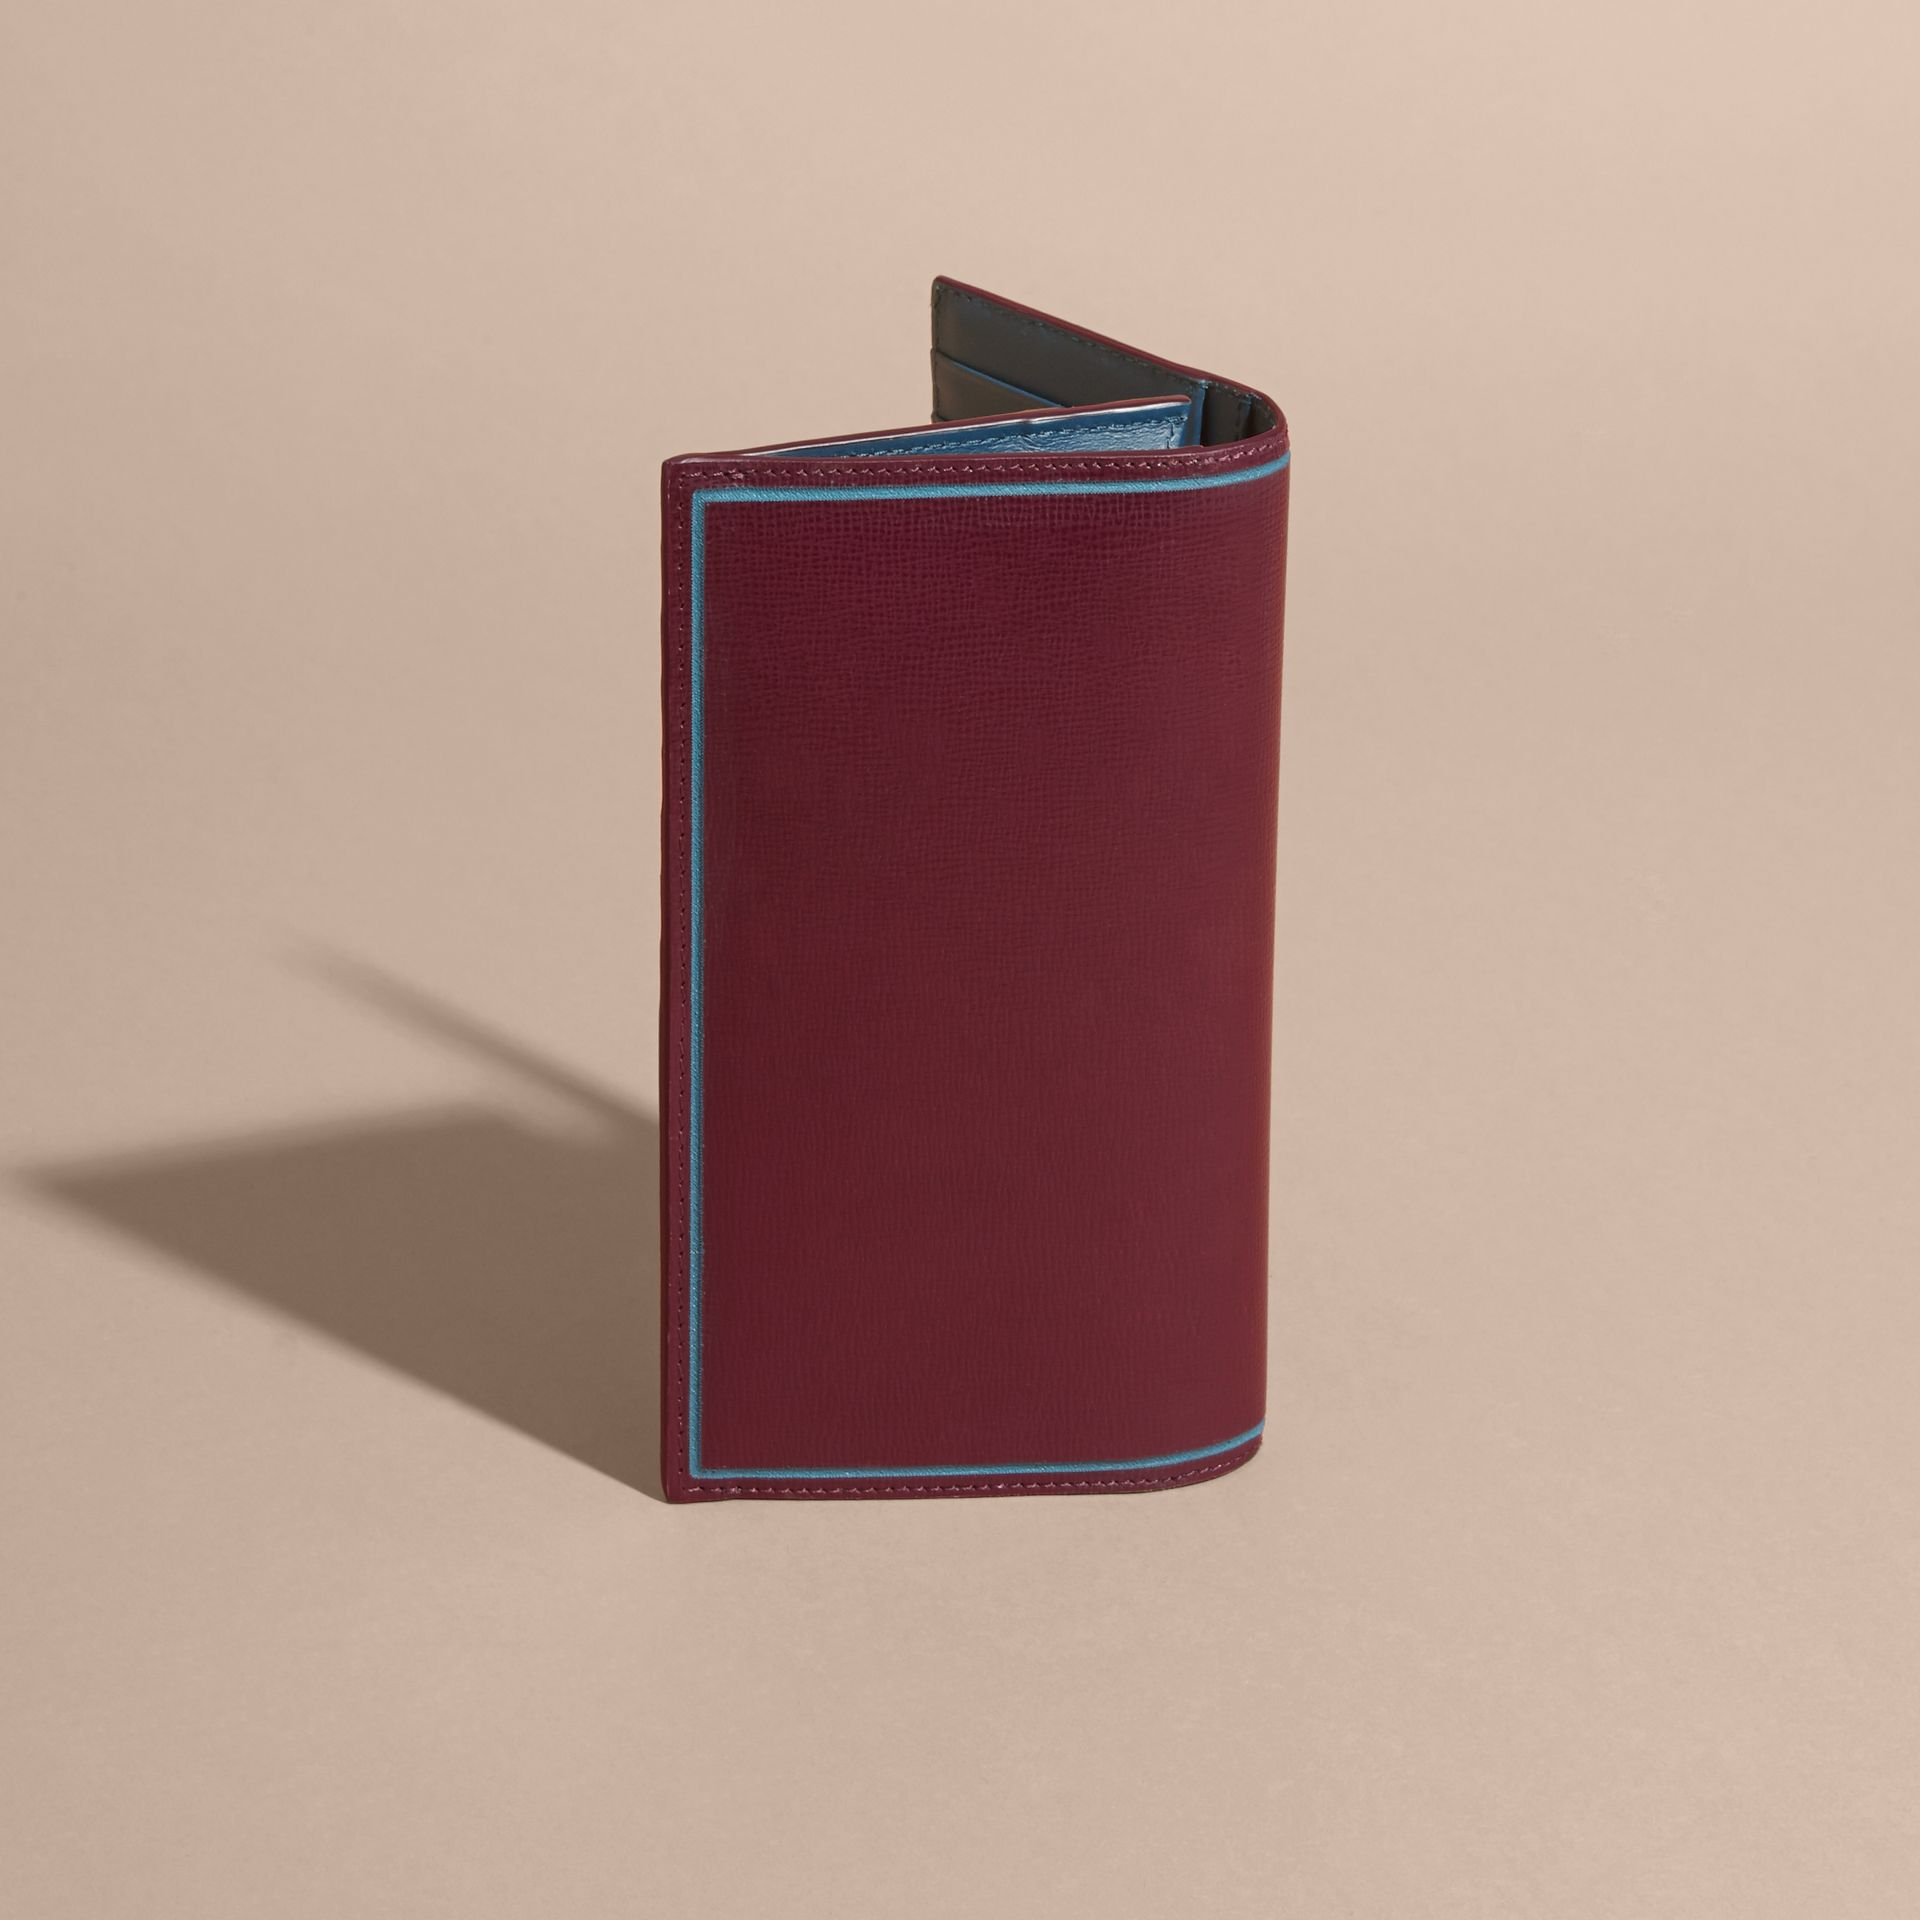 Border Detail London Leather Continental Wallet Burgundy Red - gallery image 4